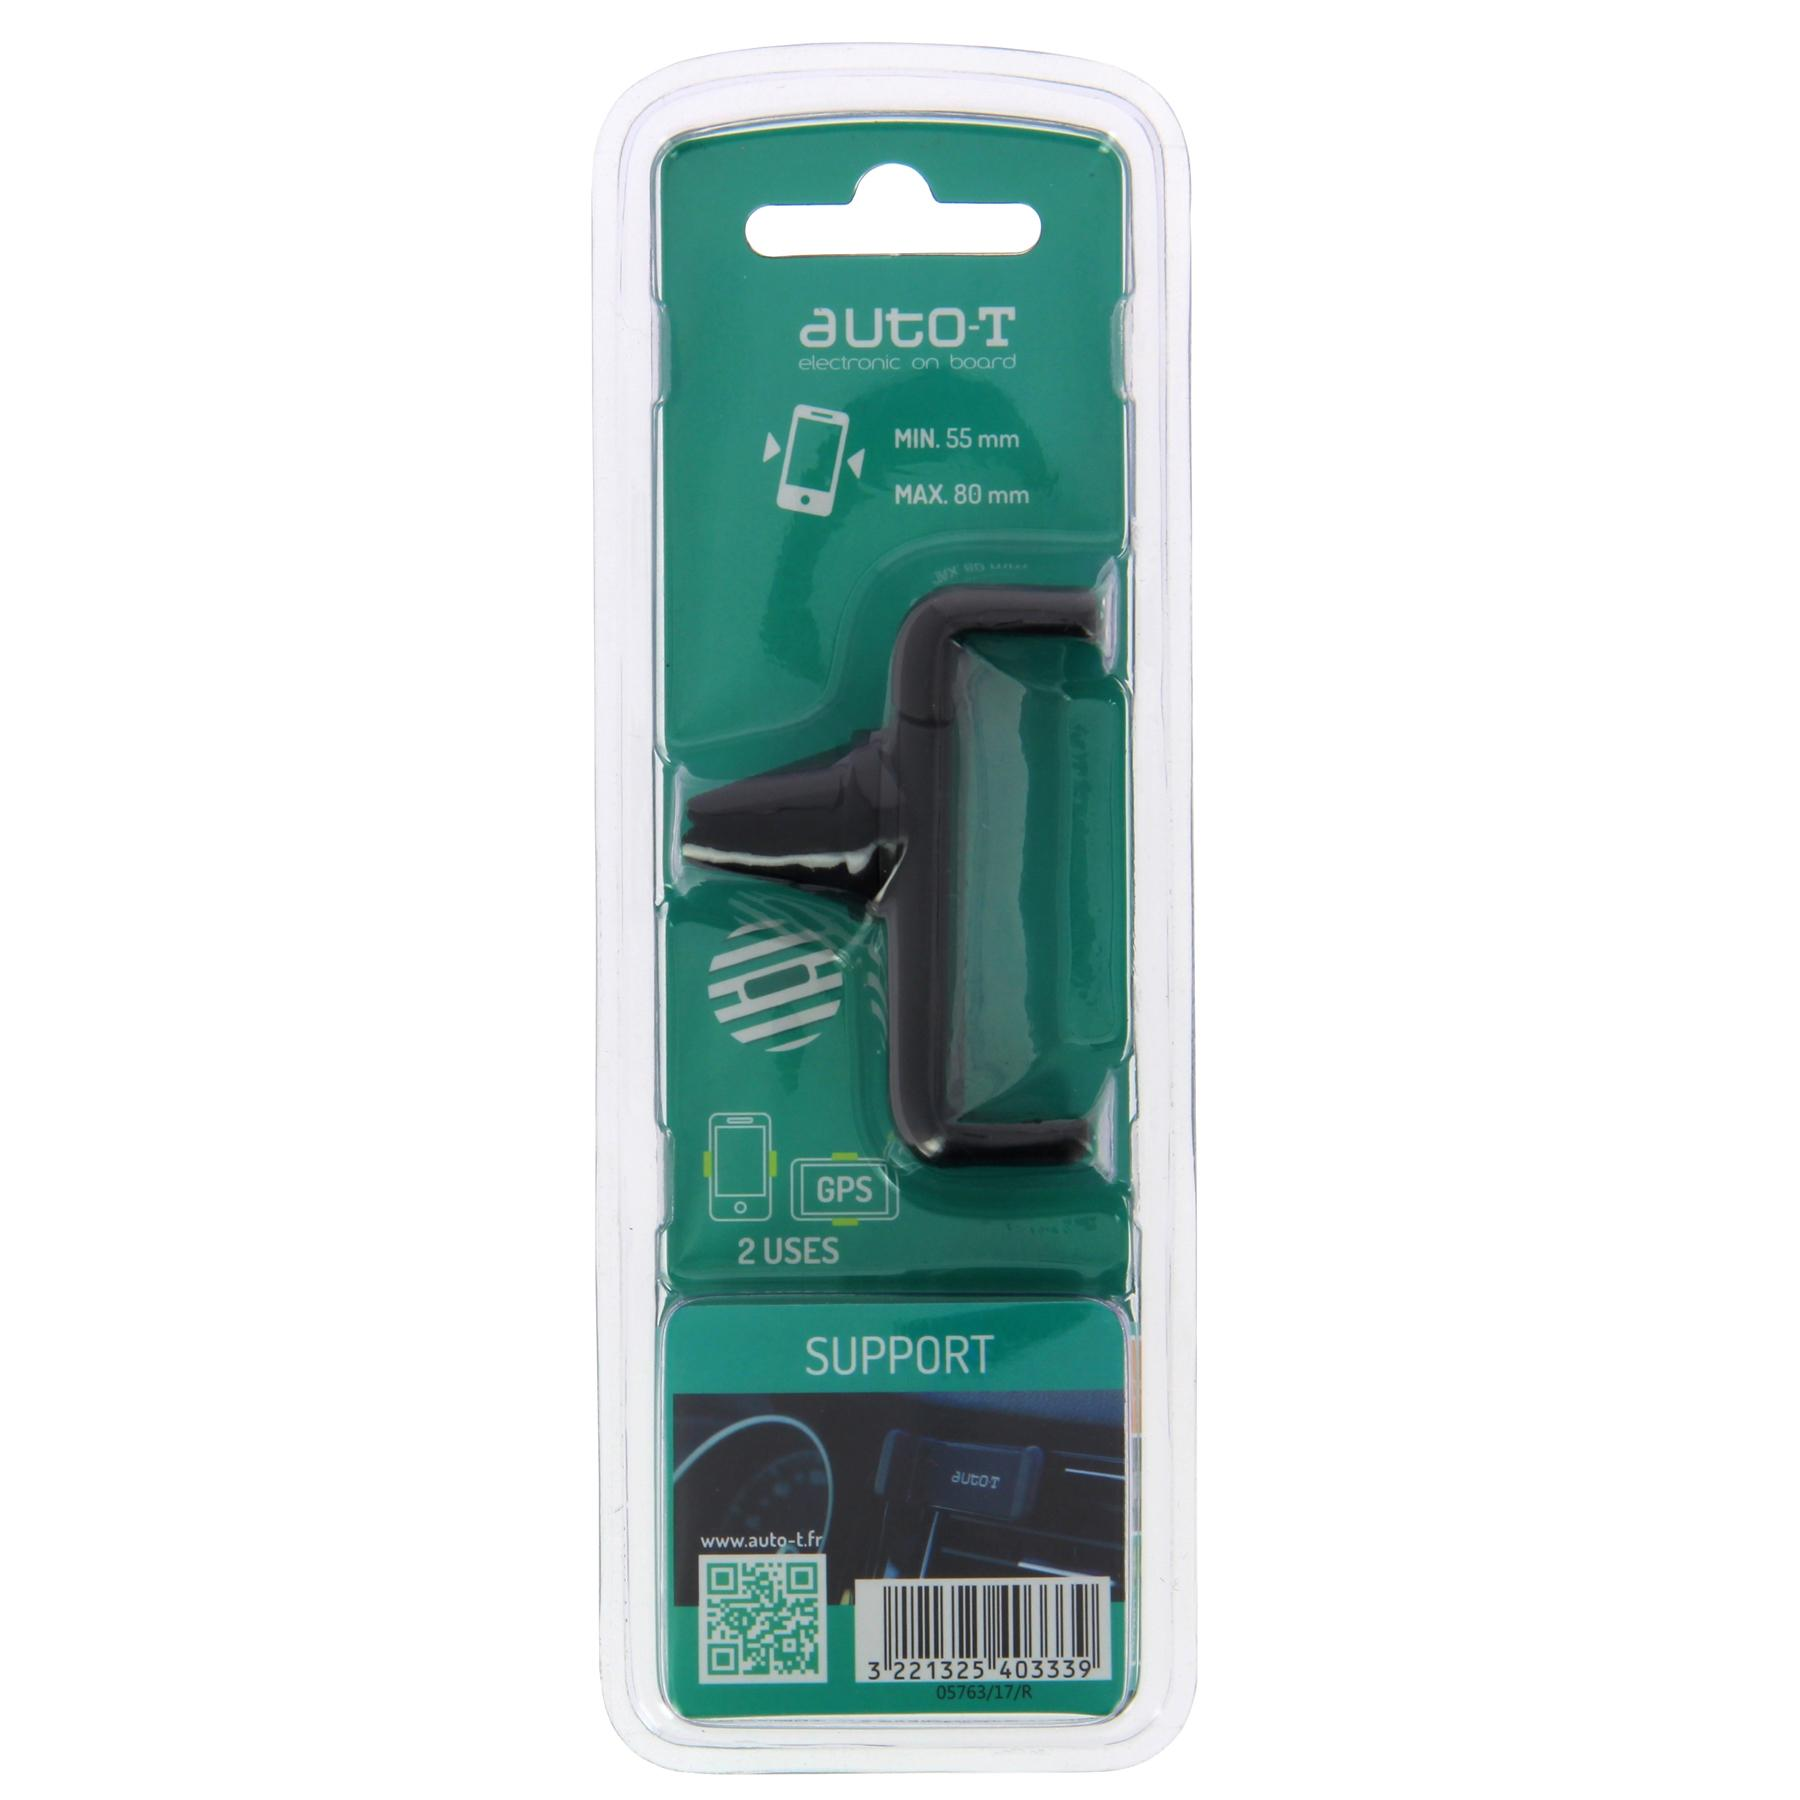 Mobile phone holders AUTO-T 540333 3221325403339